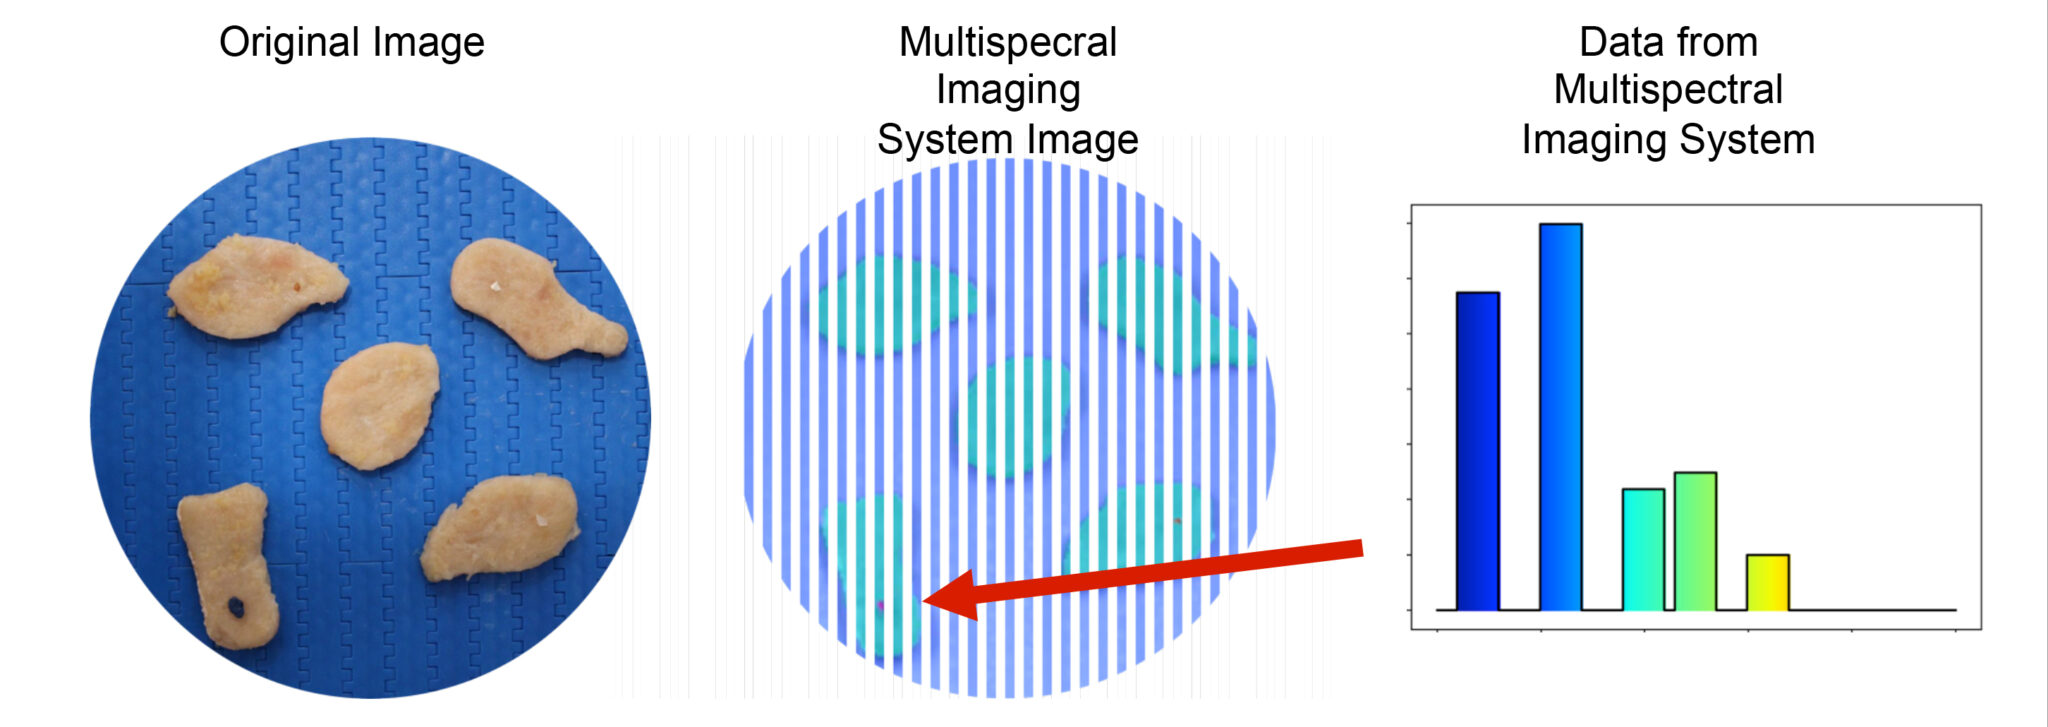 Foreign material detection on chicken nuggets using multispectral imaging